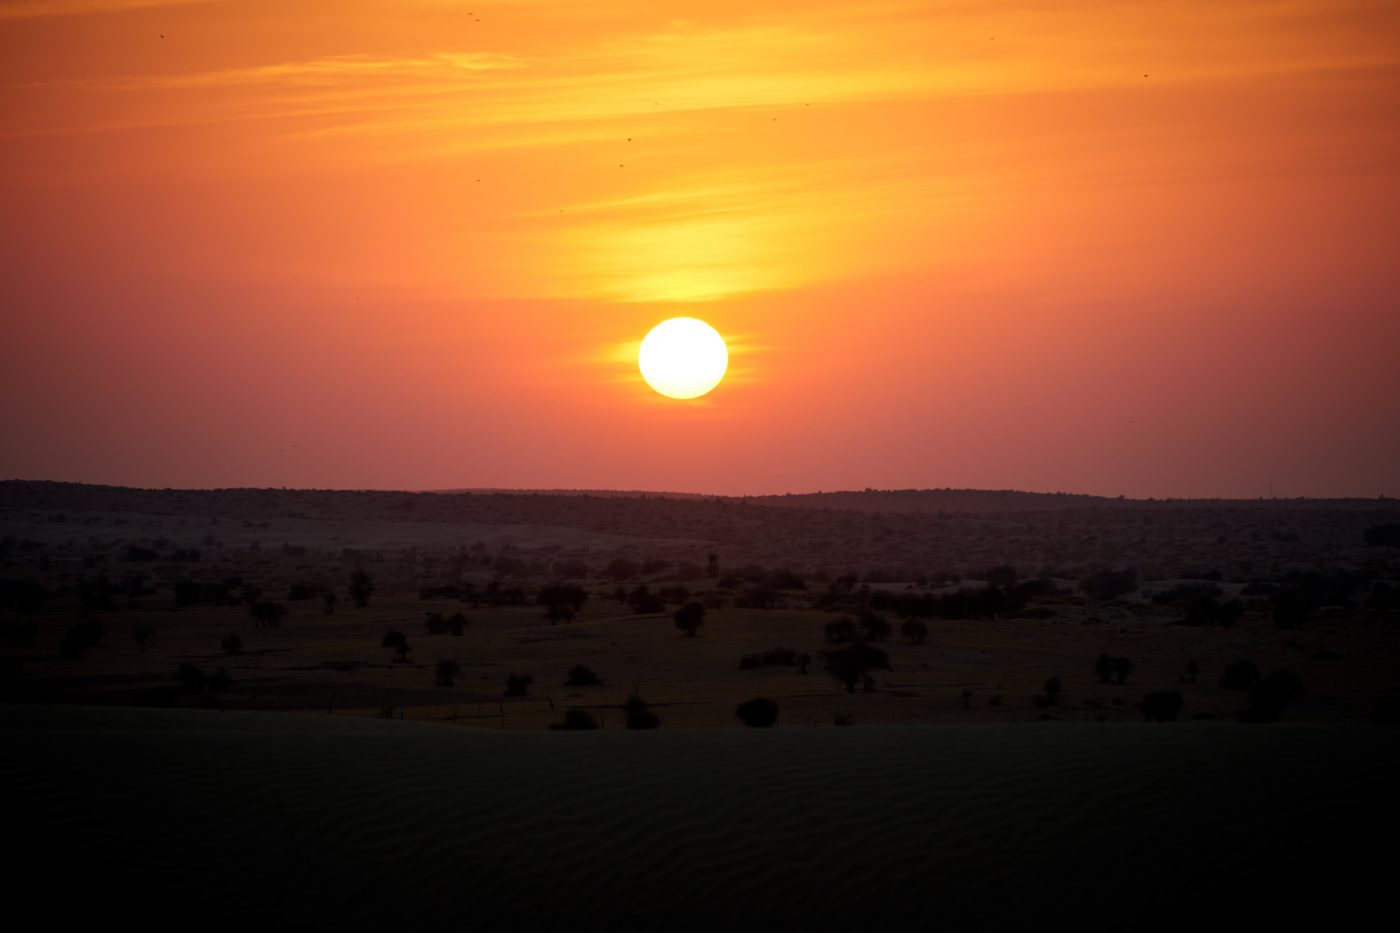 places to watch the sunset: Sunset Over The Thar Desert